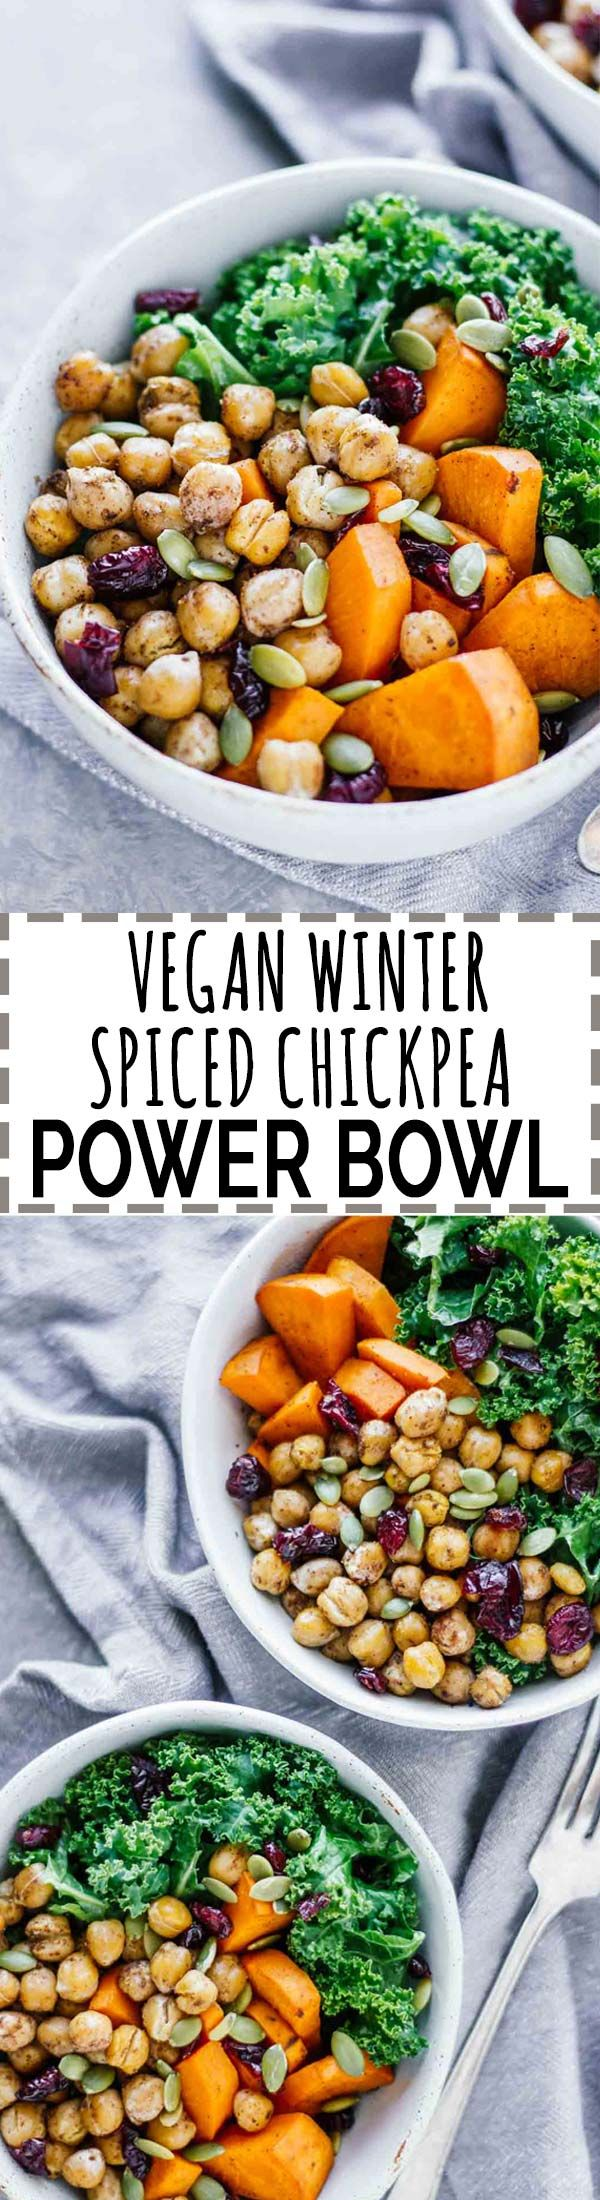 Vegan Winter Spiced Chickpea Power Bowl! All the winter feels, less than 30 minutes, vegan, vegetarian, and gluten-free!